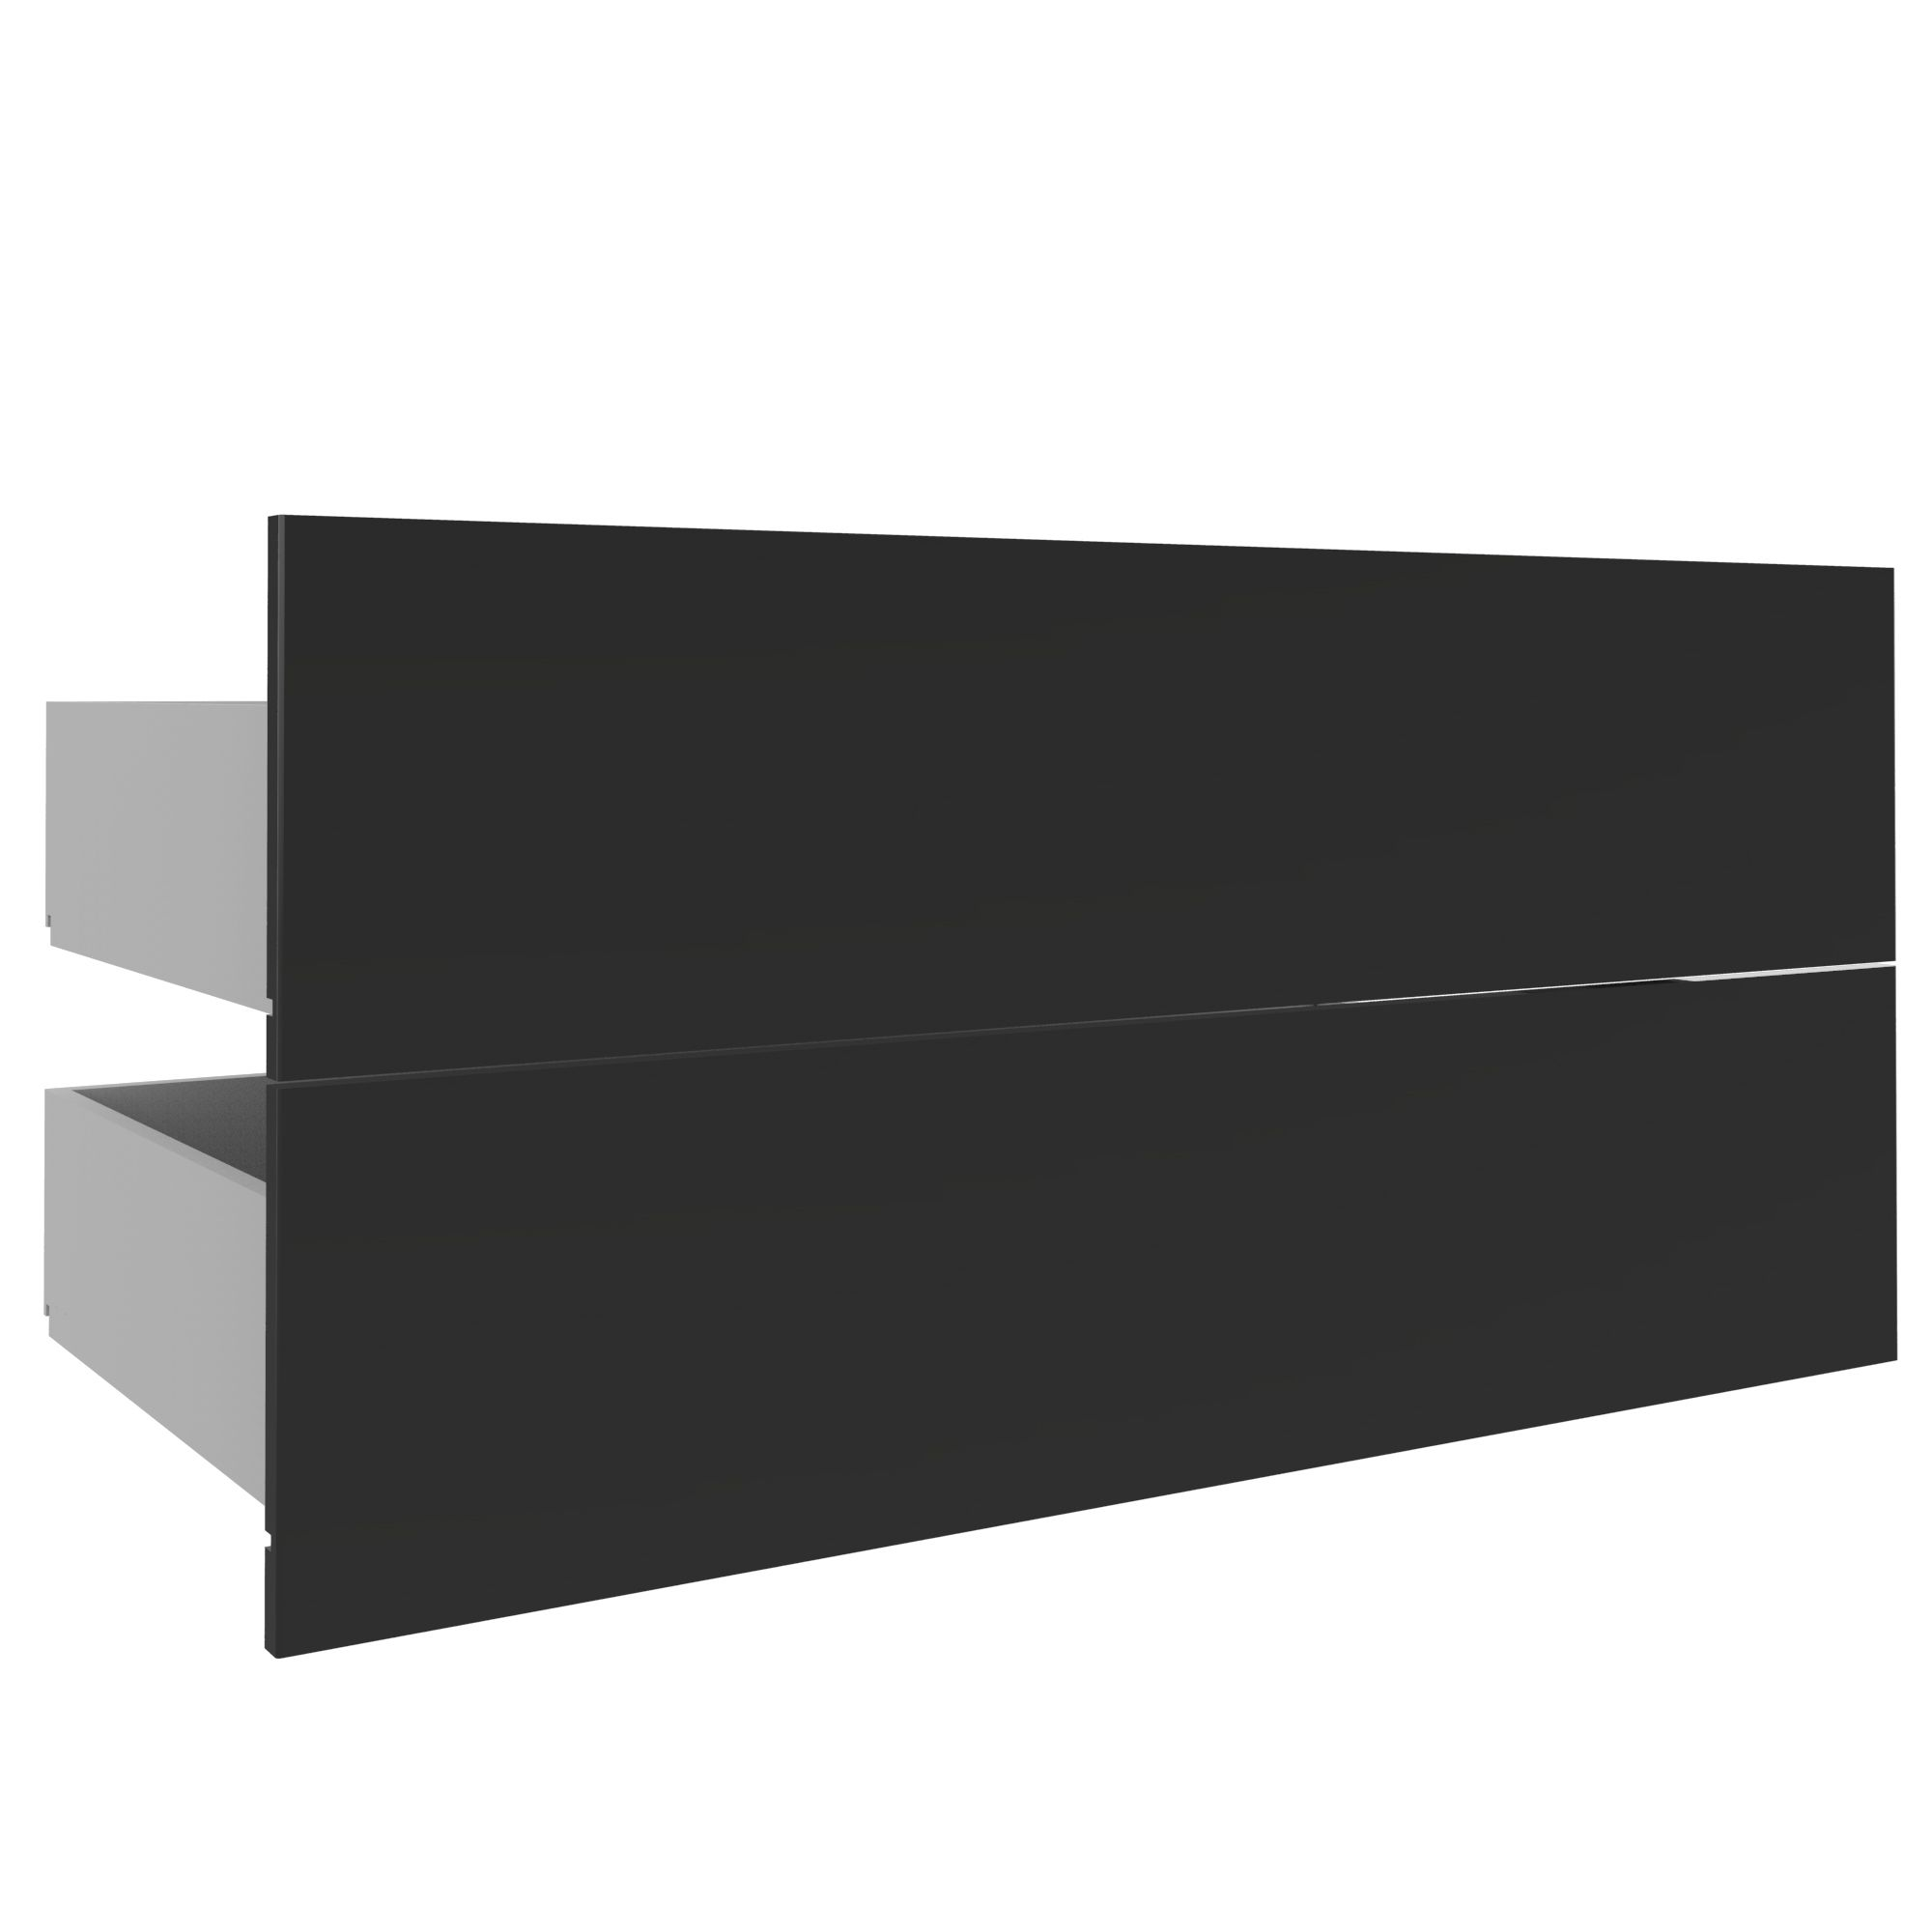 Darwin Modular Anthracite External Drawers (w) 1000mm (d) 514mm, Pack Of 2